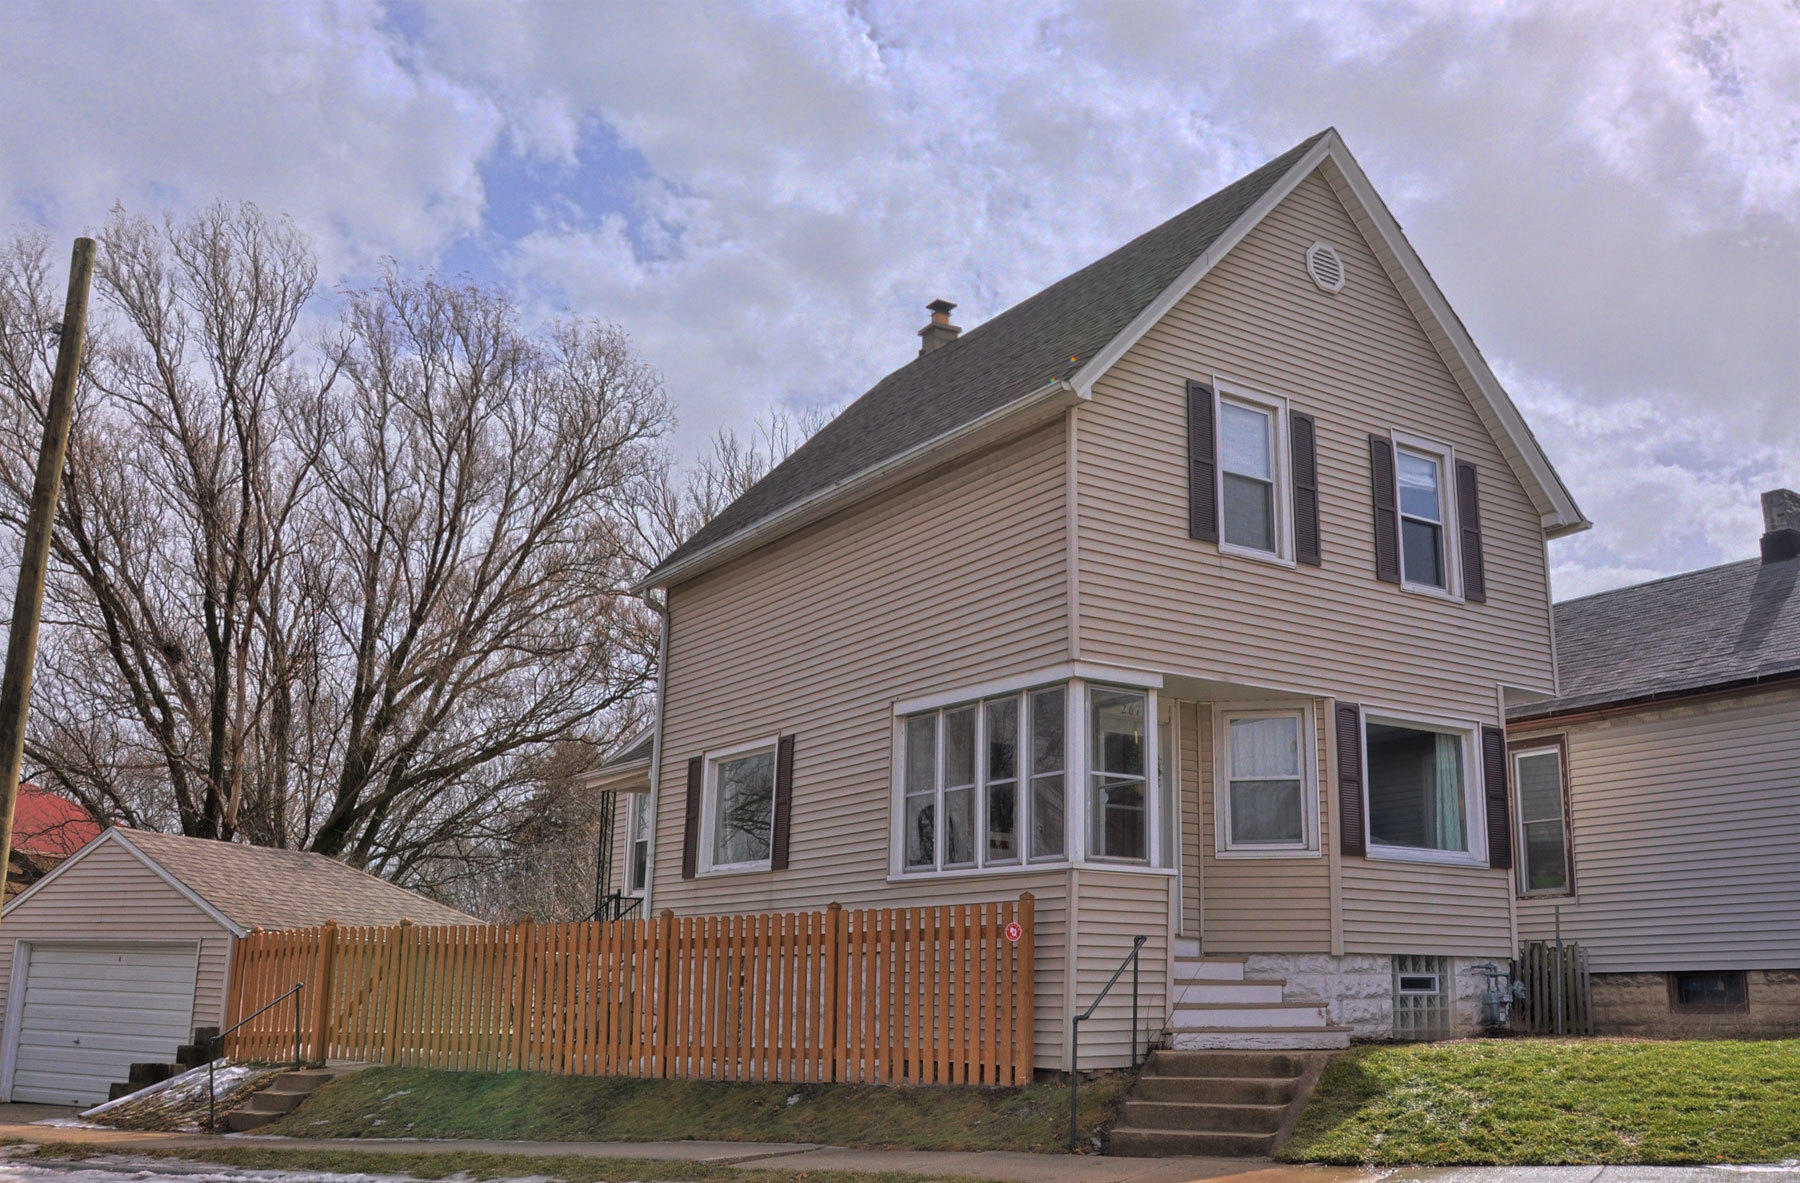 2678 Clement Ave, Milwaukee, Wisconsin 53207, 3 Bedrooms Bedrooms, 6 Rooms Rooms,1 BathroomBathrooms,Single-Family,For Sale,Clement Ave,1626656